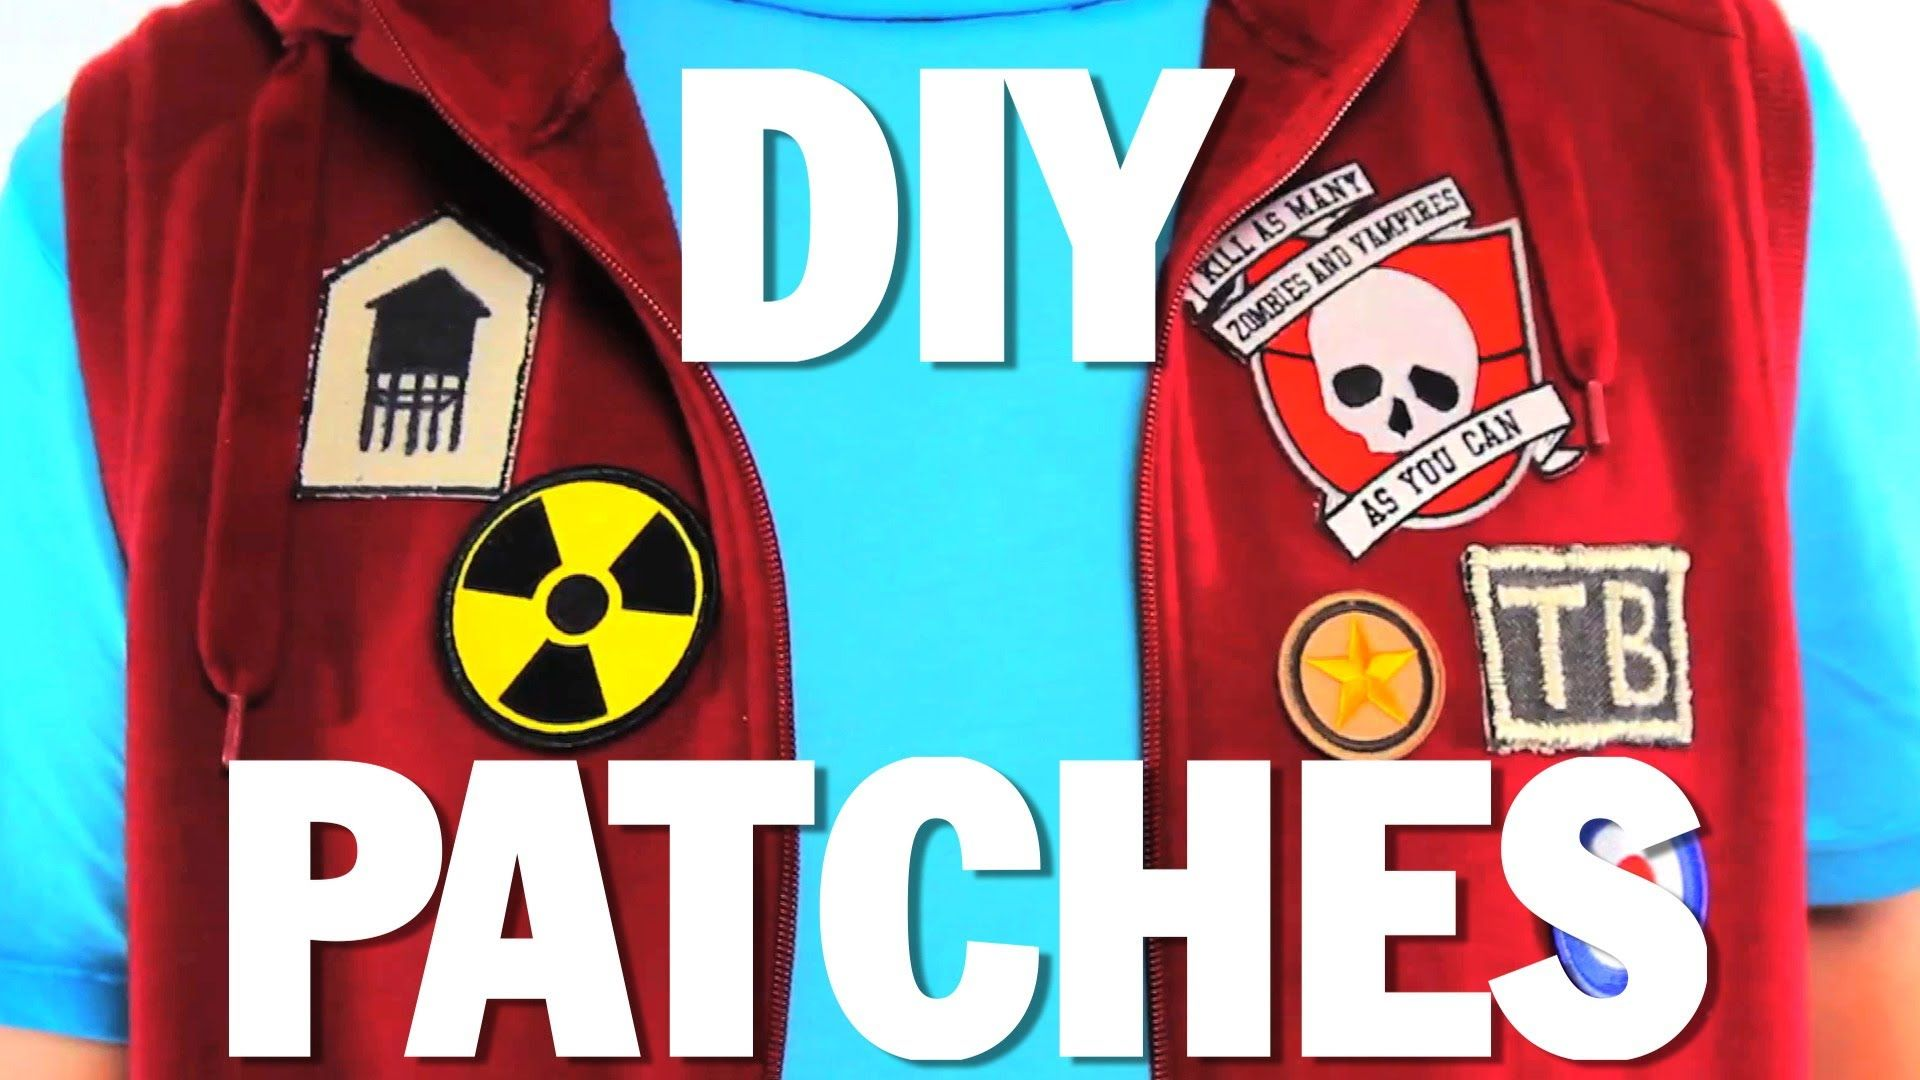 How To Make Patches Diy Threadbanger Here Are Two Different Ways To Make Patches Enjoy Making Your Own Patch How To Make Patches Diy Patches Badges Diy